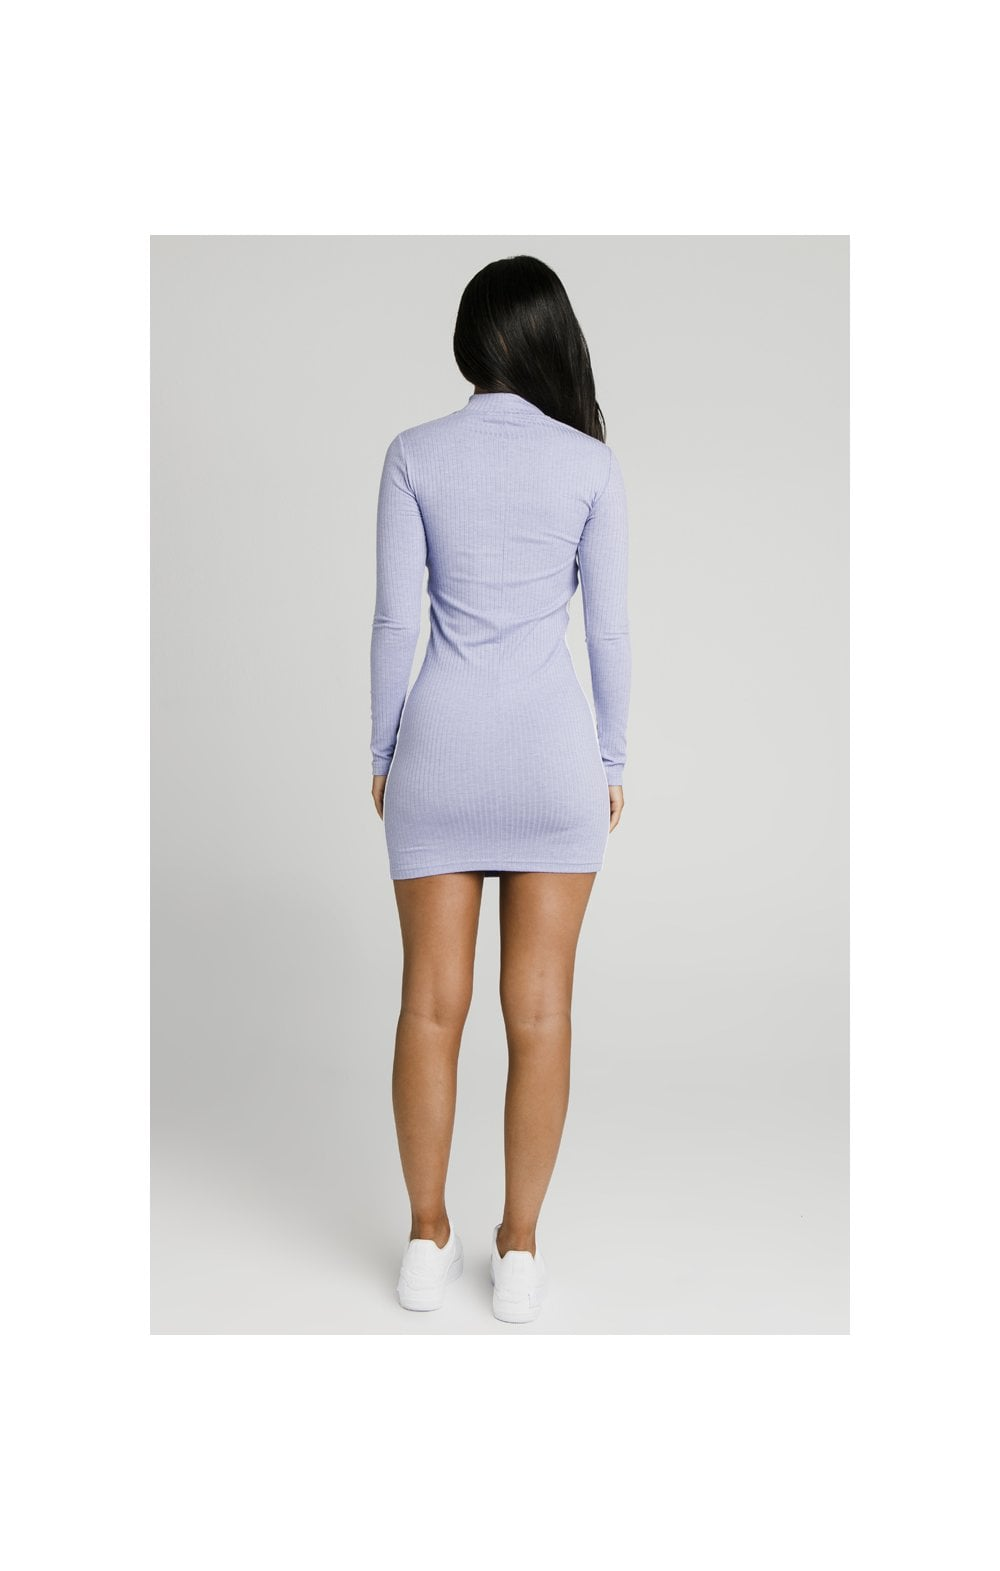 SikSilk Violet Rib Bodycon Dress - Violet (5)